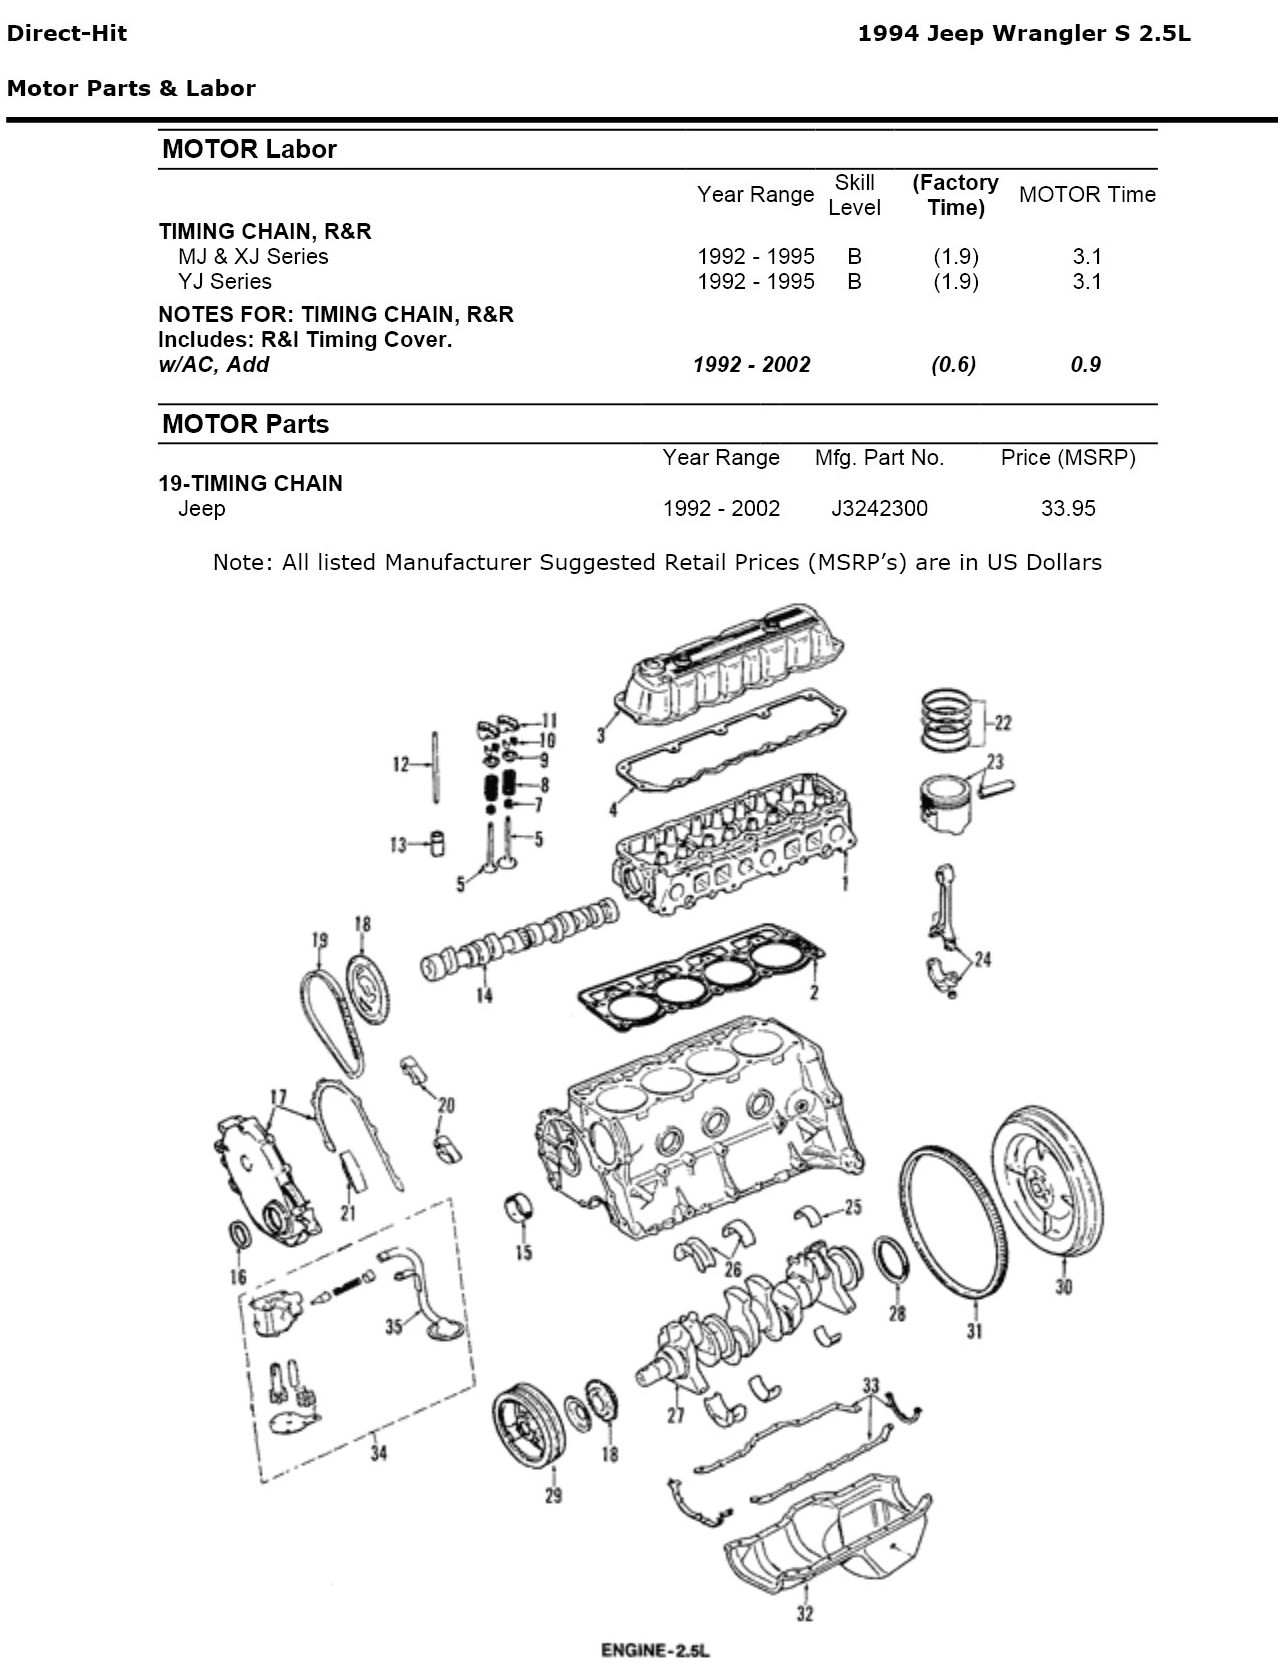 How Hard Is It To Replace A Timing Chain On 1994 Jeep Wrangler 95 Fuel Filter Location Graphic